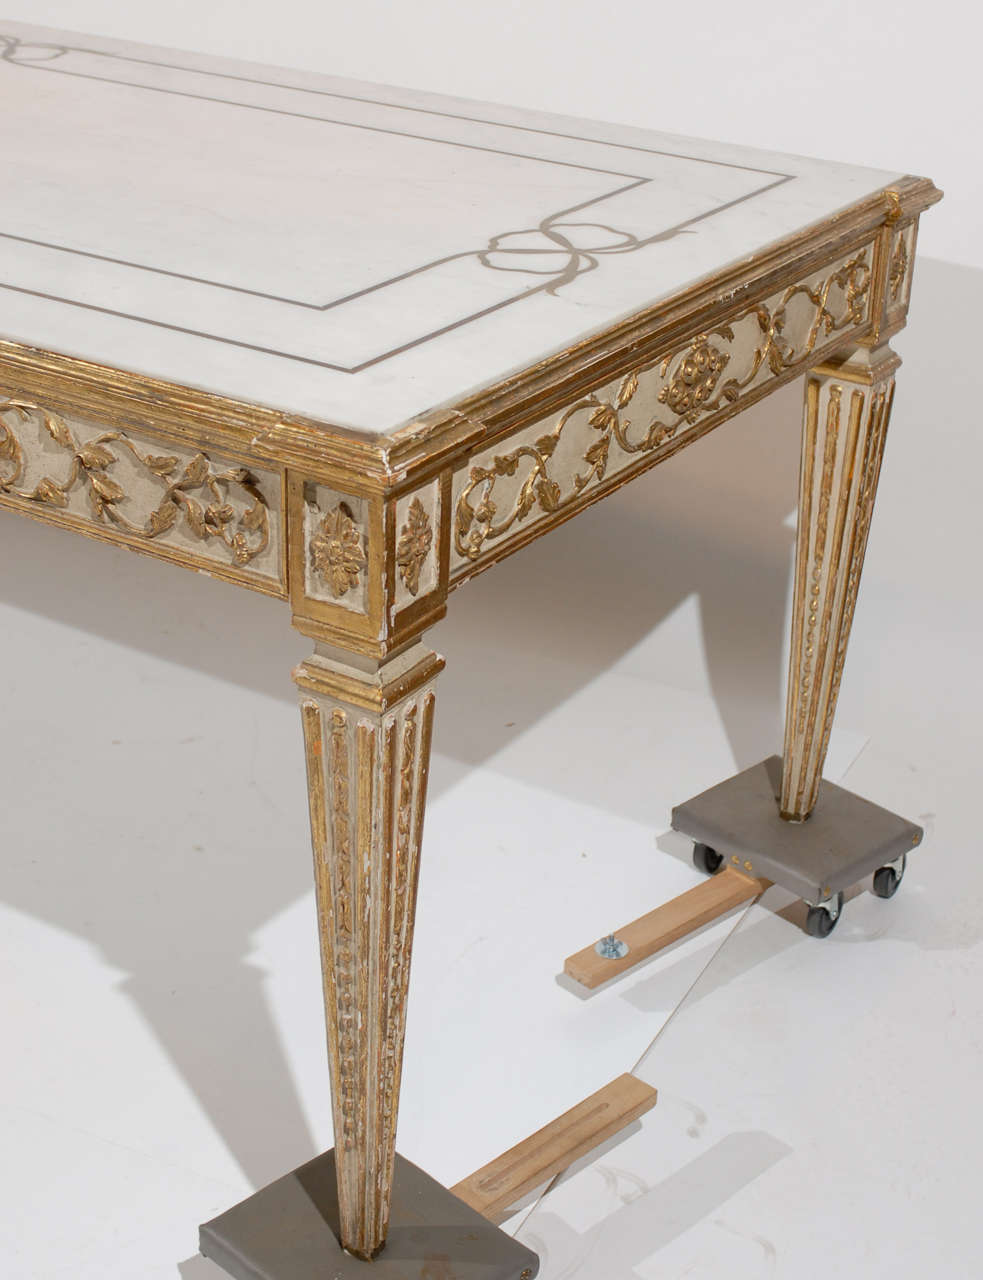 Marble Inlay Table Tops : Large continental inlaid marble top dining table with